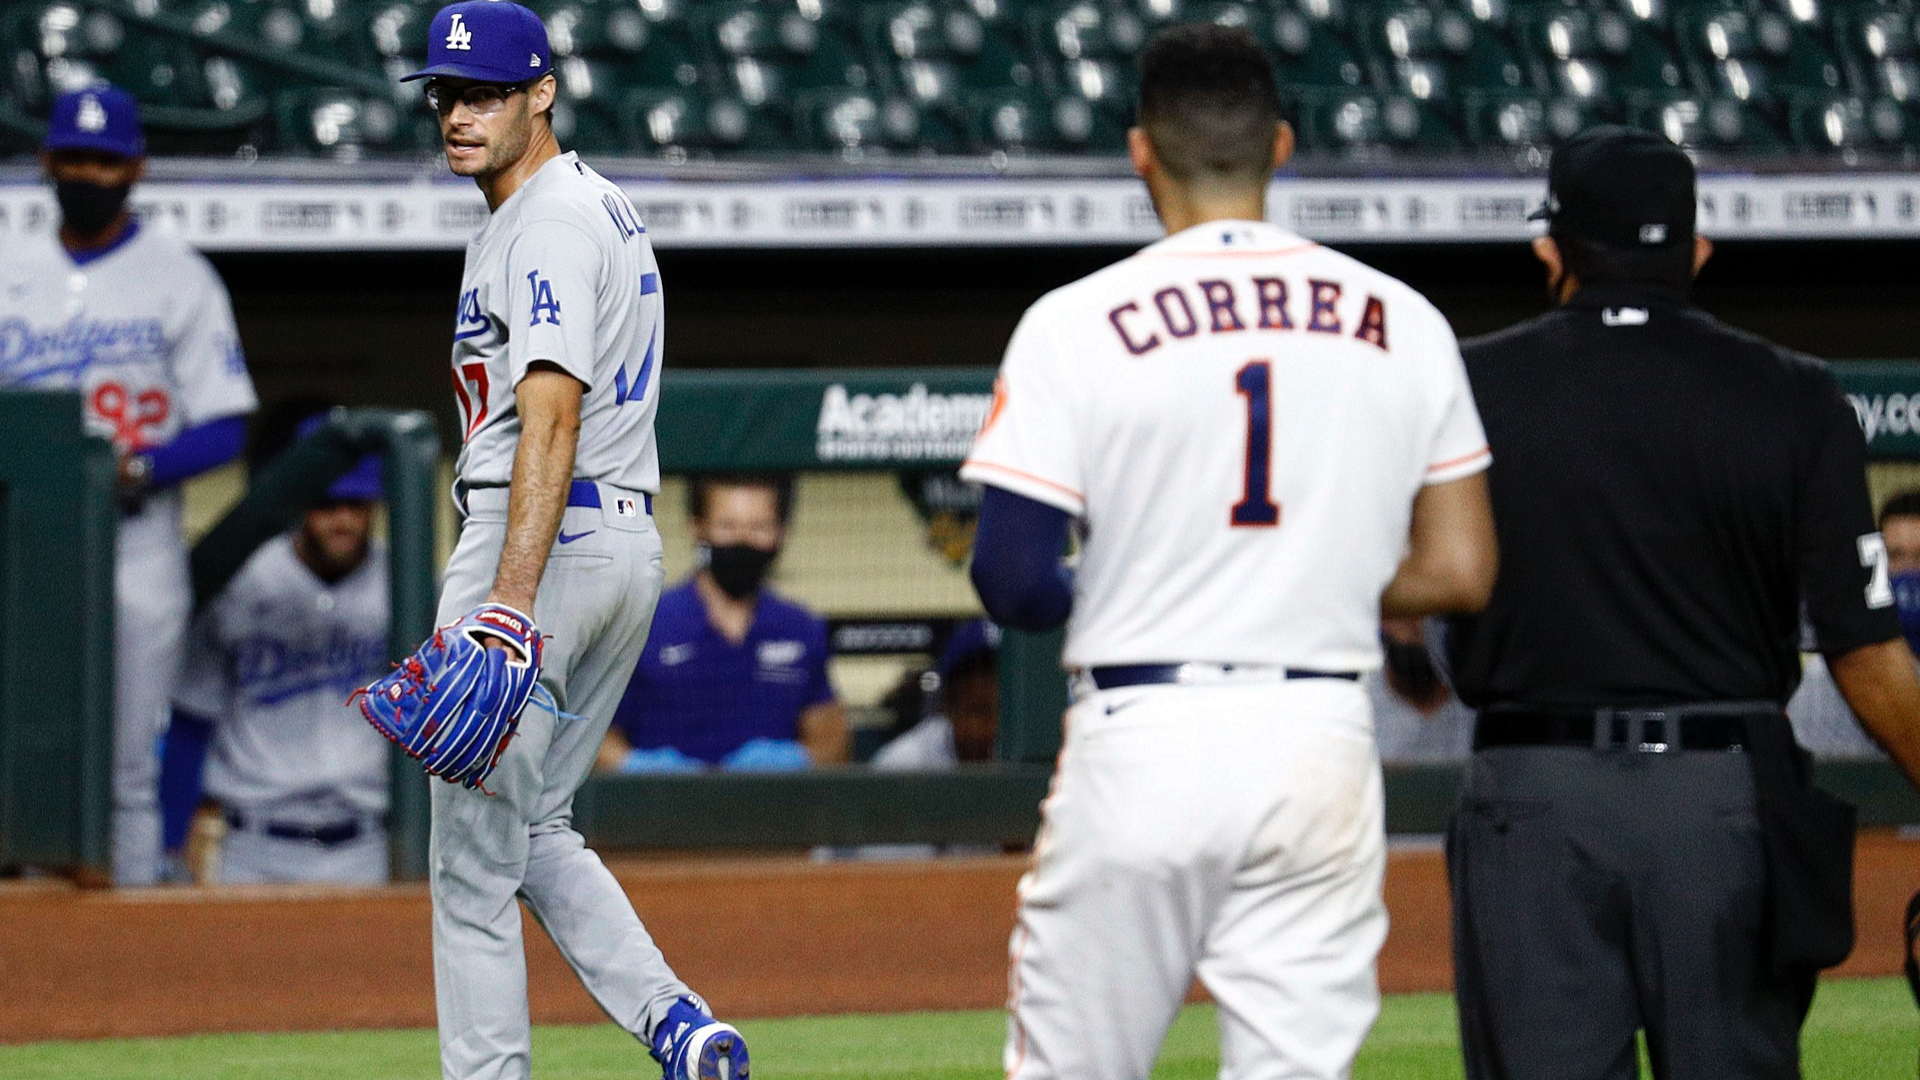 Dodgers, Astros get heated in rematch of 2017 World Series after Joe Kelly's antics 1